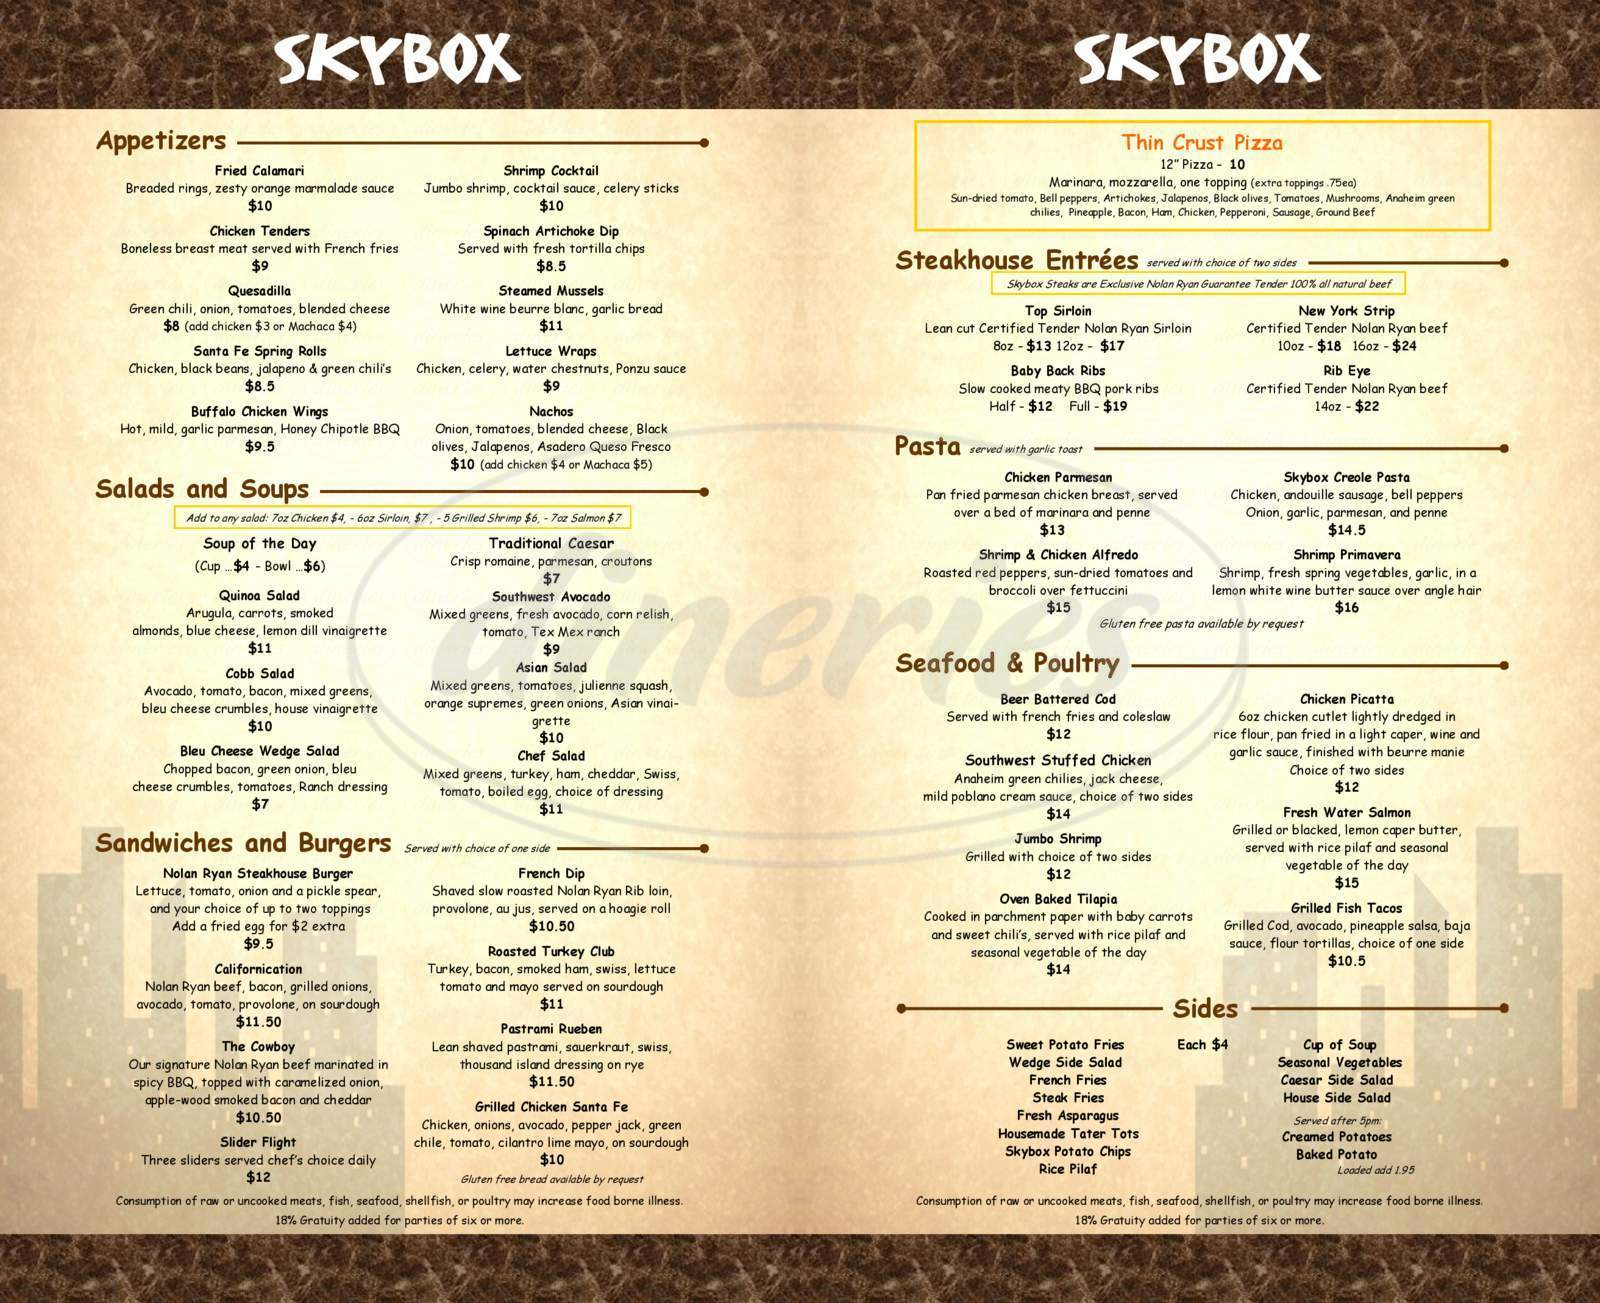 menu for Skybox Restaurant and Sports Bar